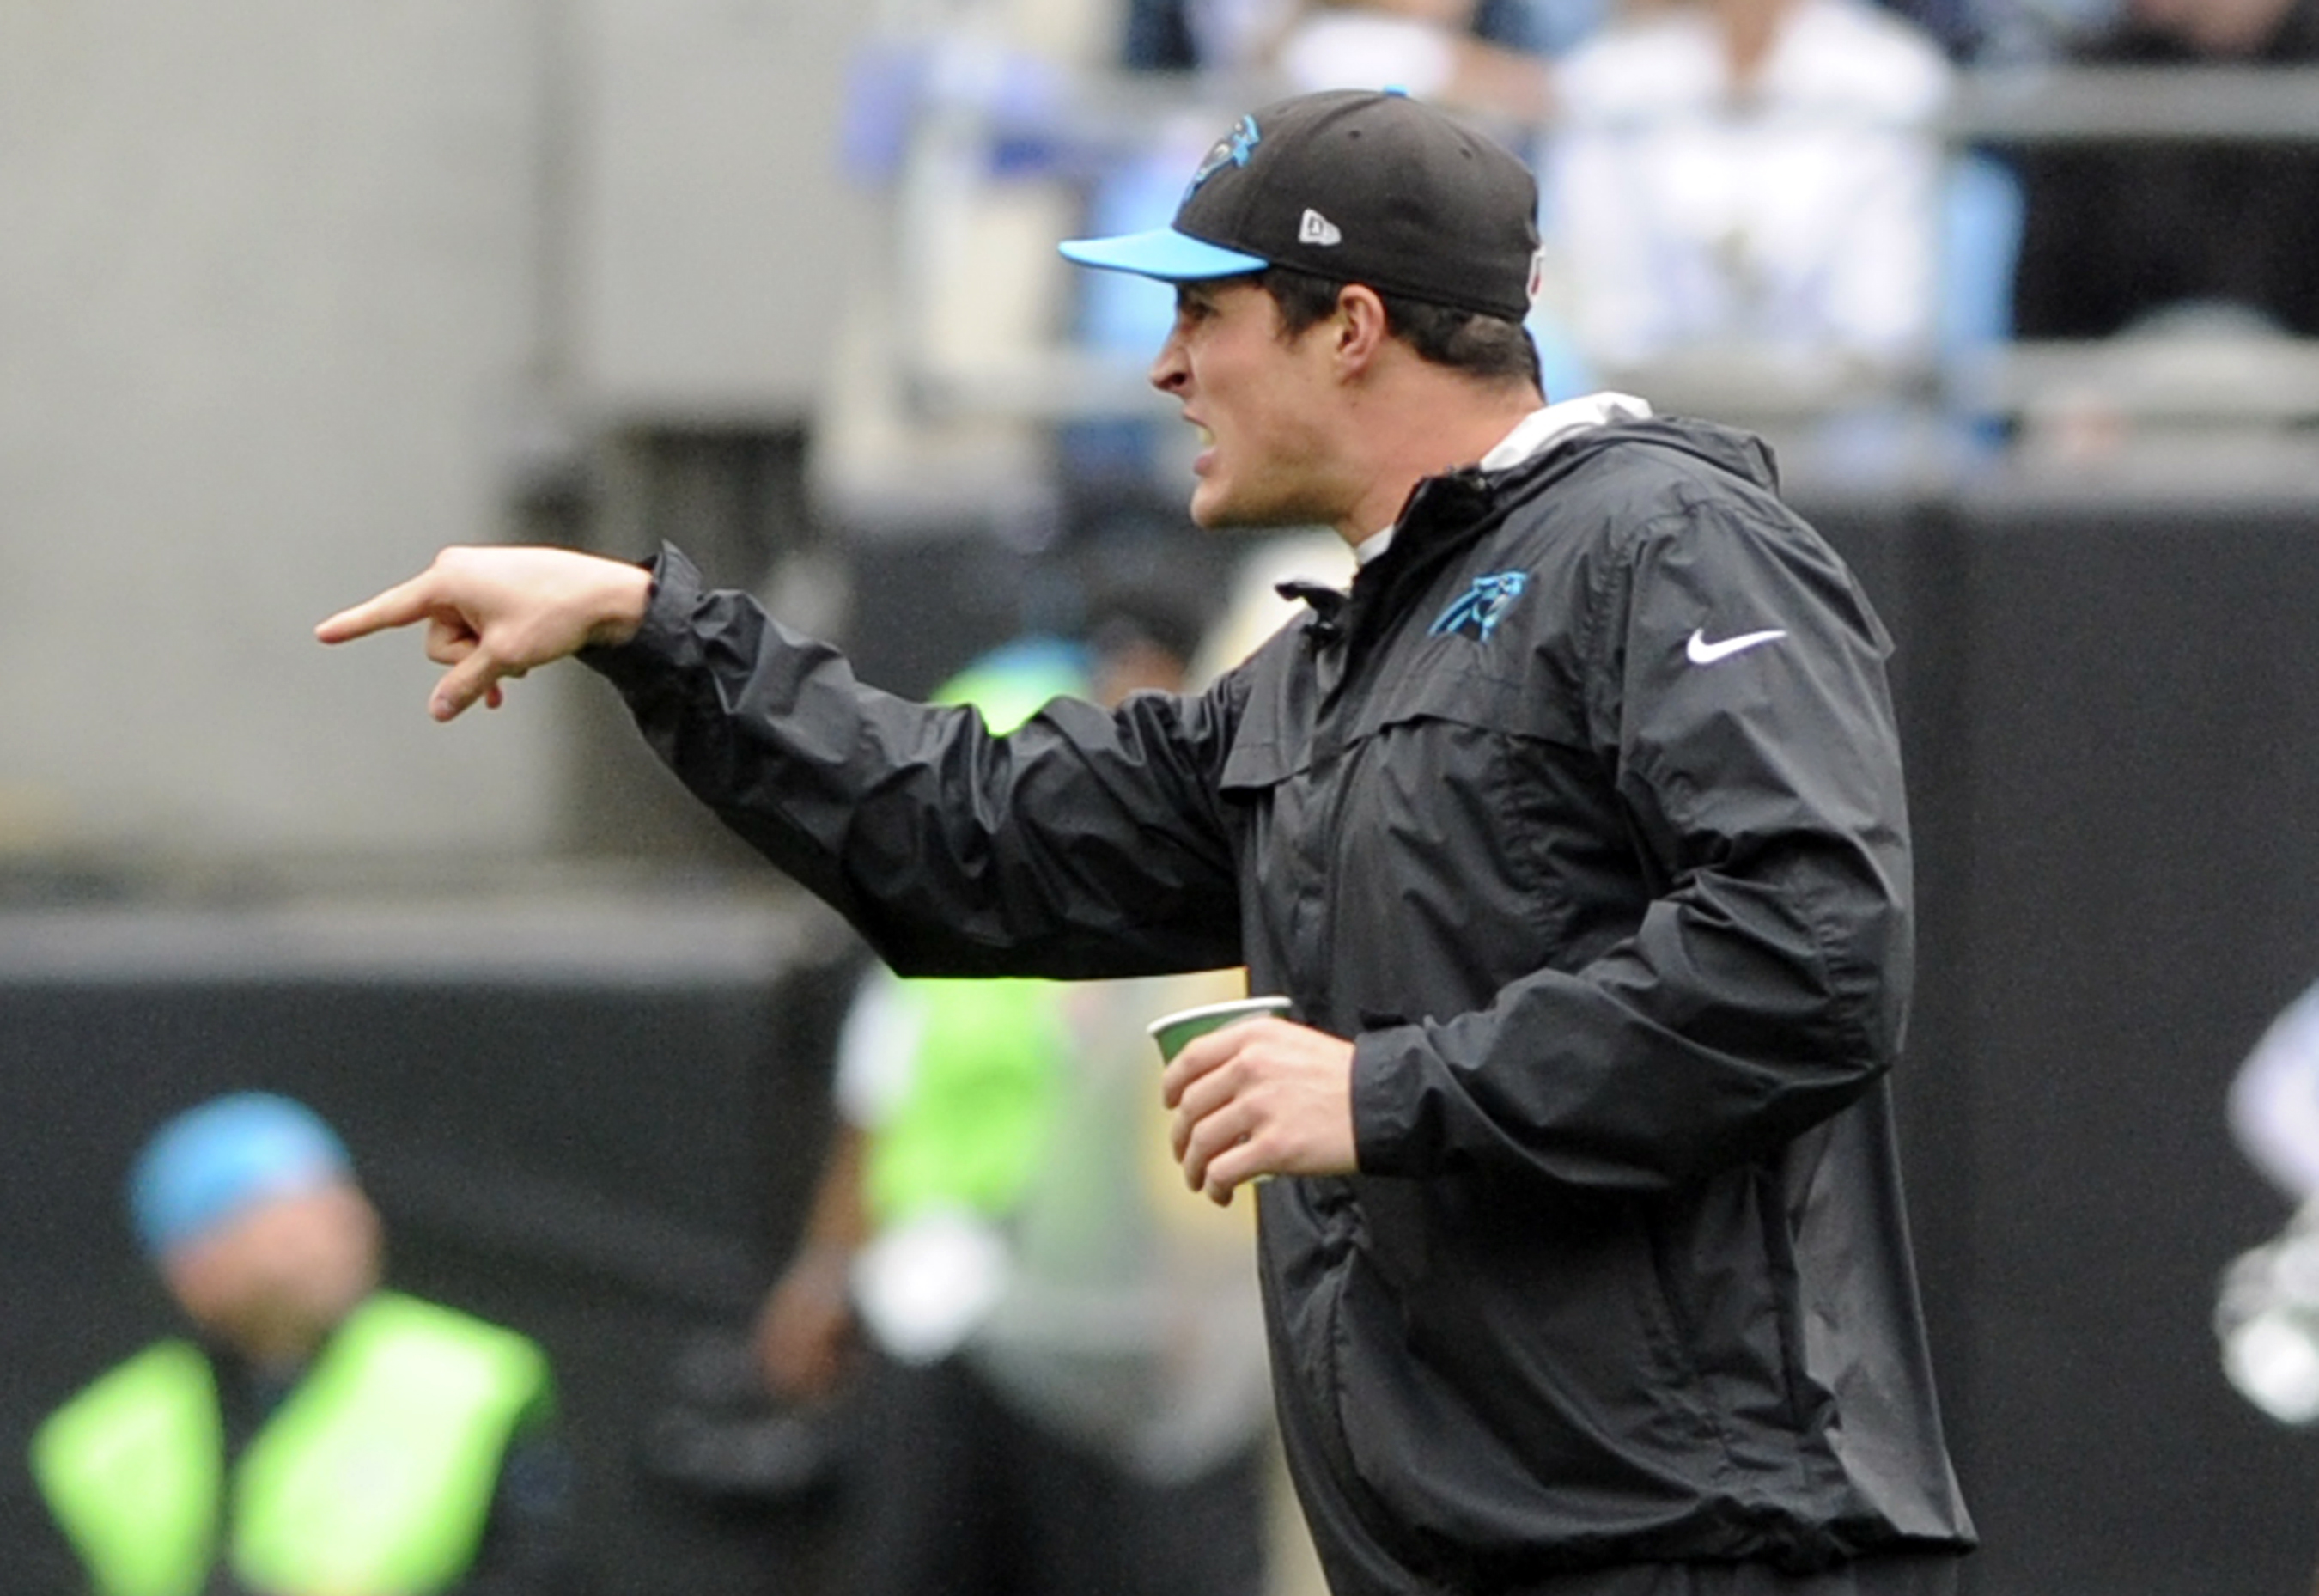 Carolina Panthers' Luke Kuechly shouts to teammates from the sideline in the first half of an NFL football game against the New Orleans Saints in Charlotte, N.C., Sunday, Sept. 27, 2015. (AP Photo/Mike McCarn)